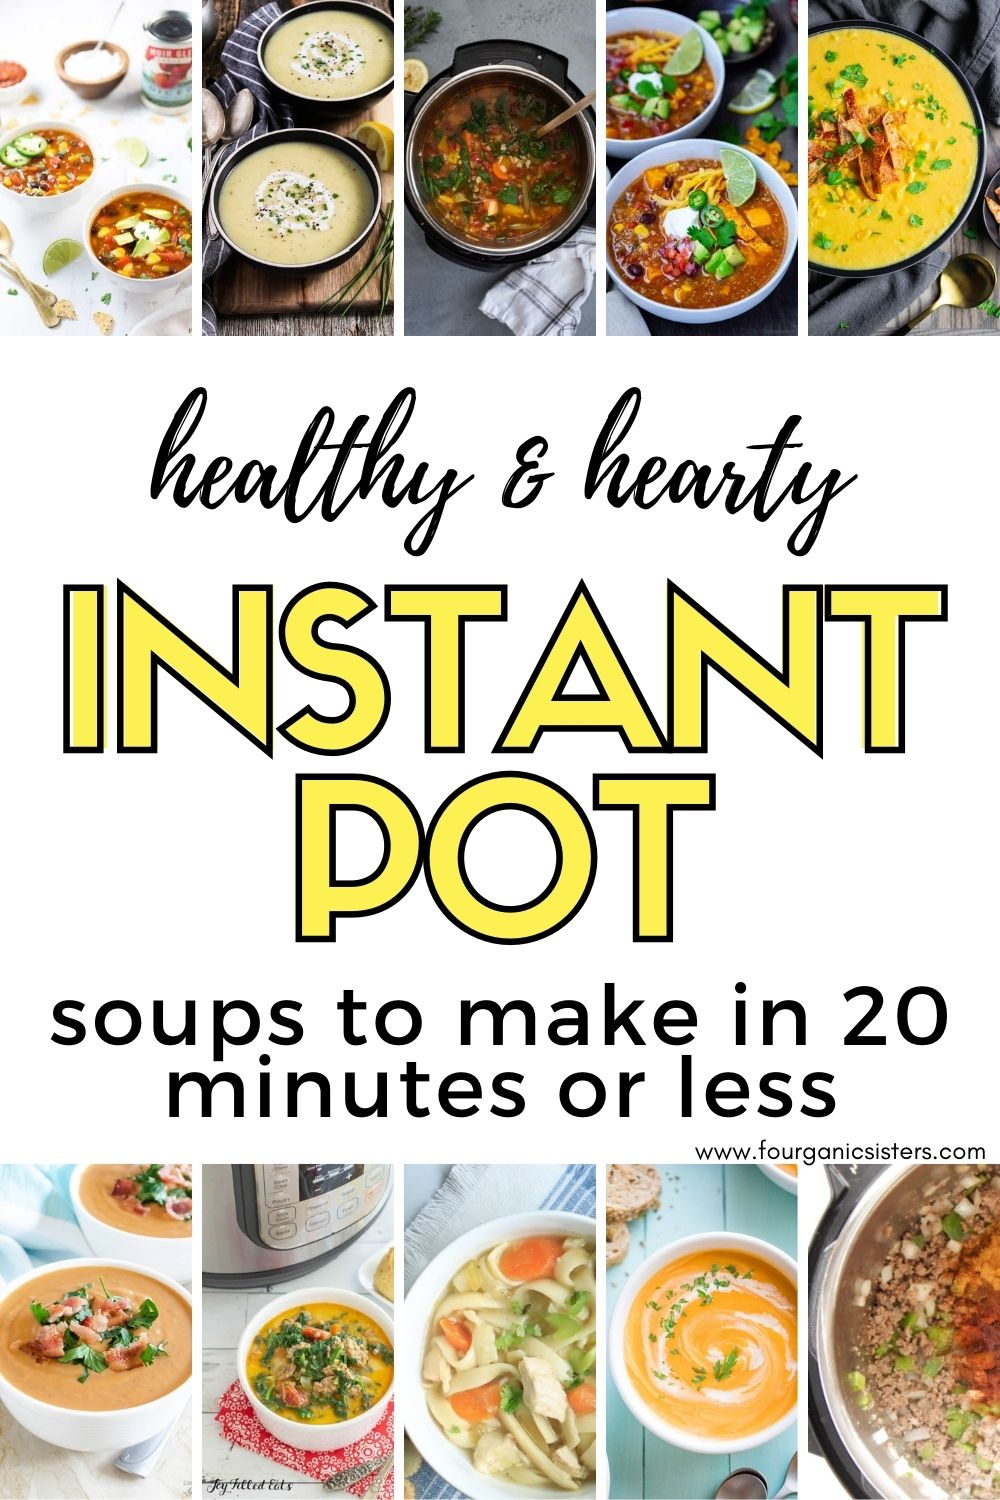 Easy Instant Pot Soup Recipes | Fourganic Sisters